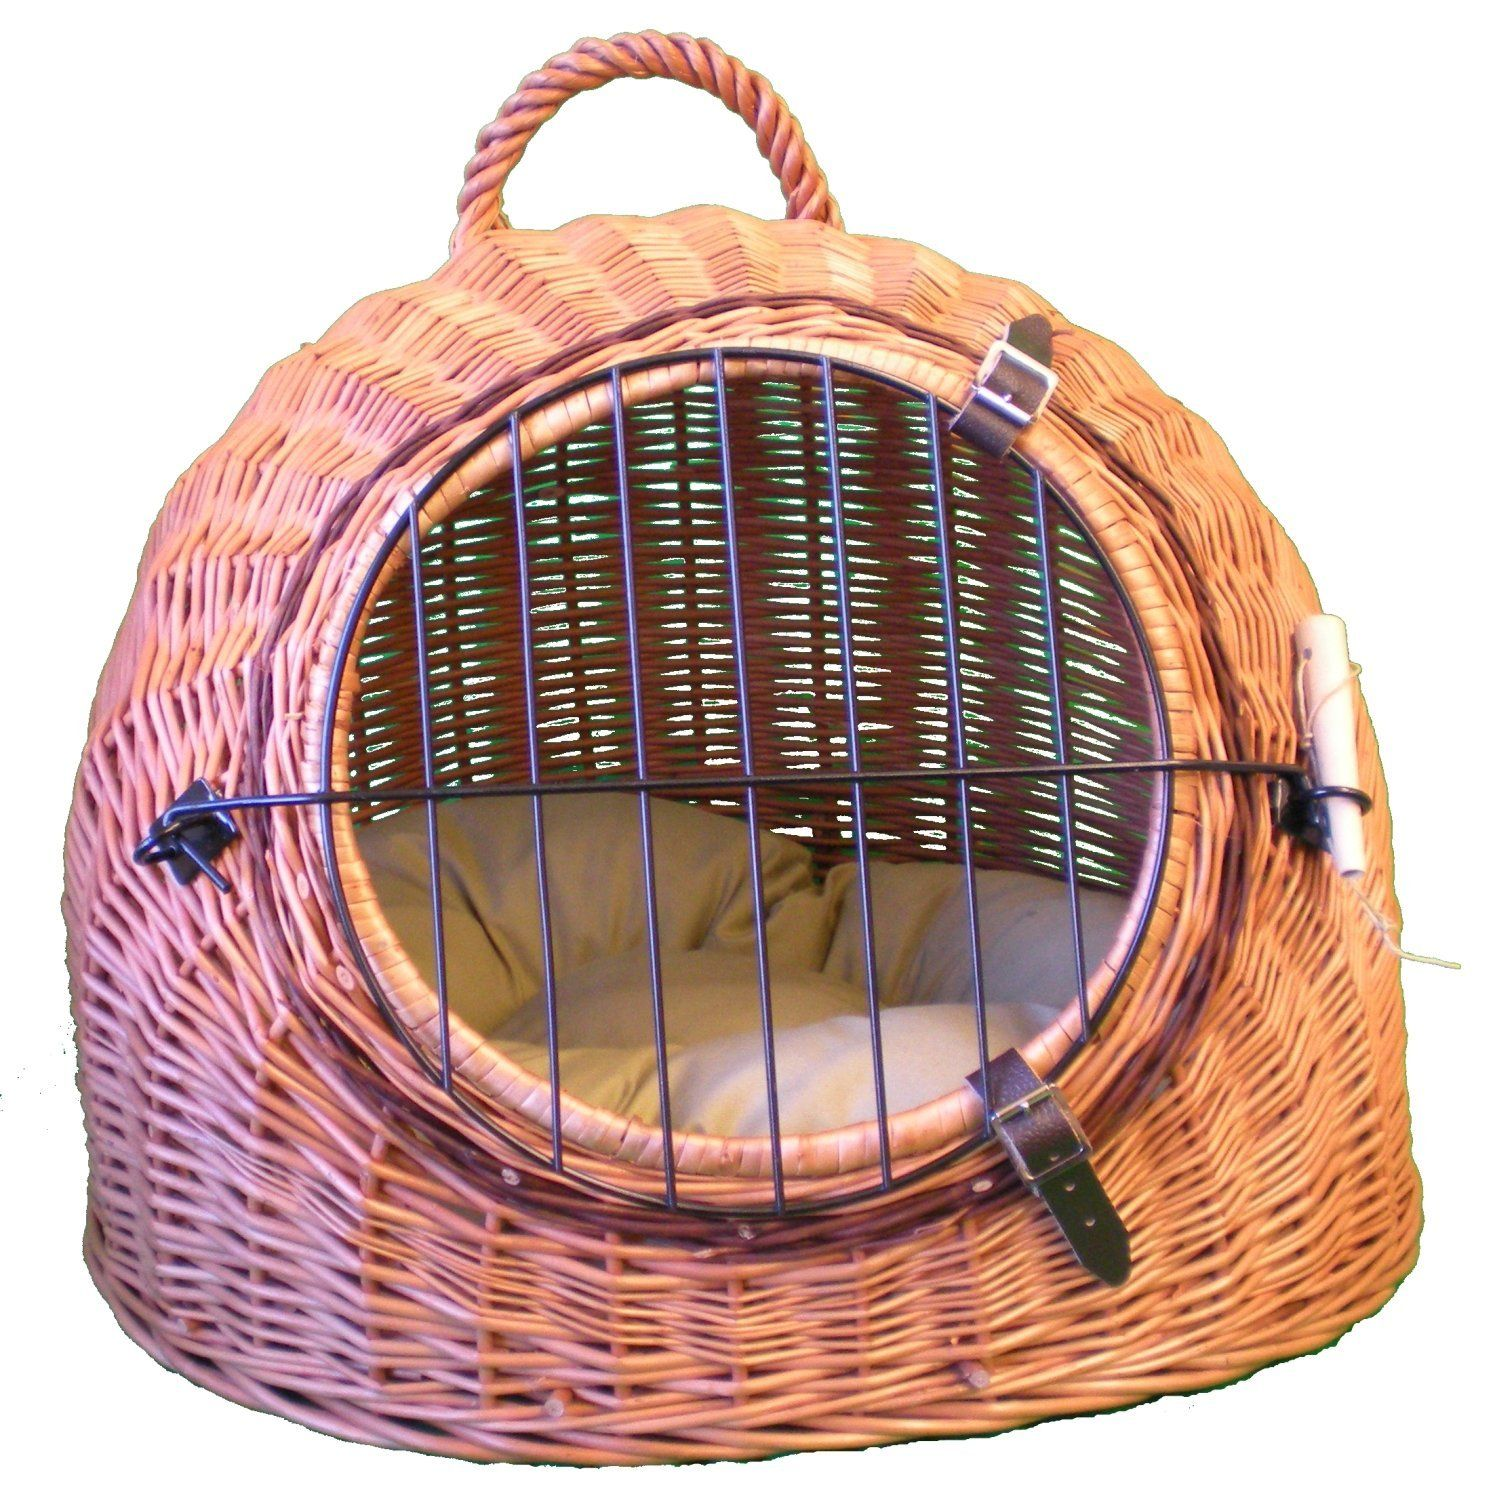 Wicker 'Igloo' Cat Carrier Basket Cat cages, Cat carrier